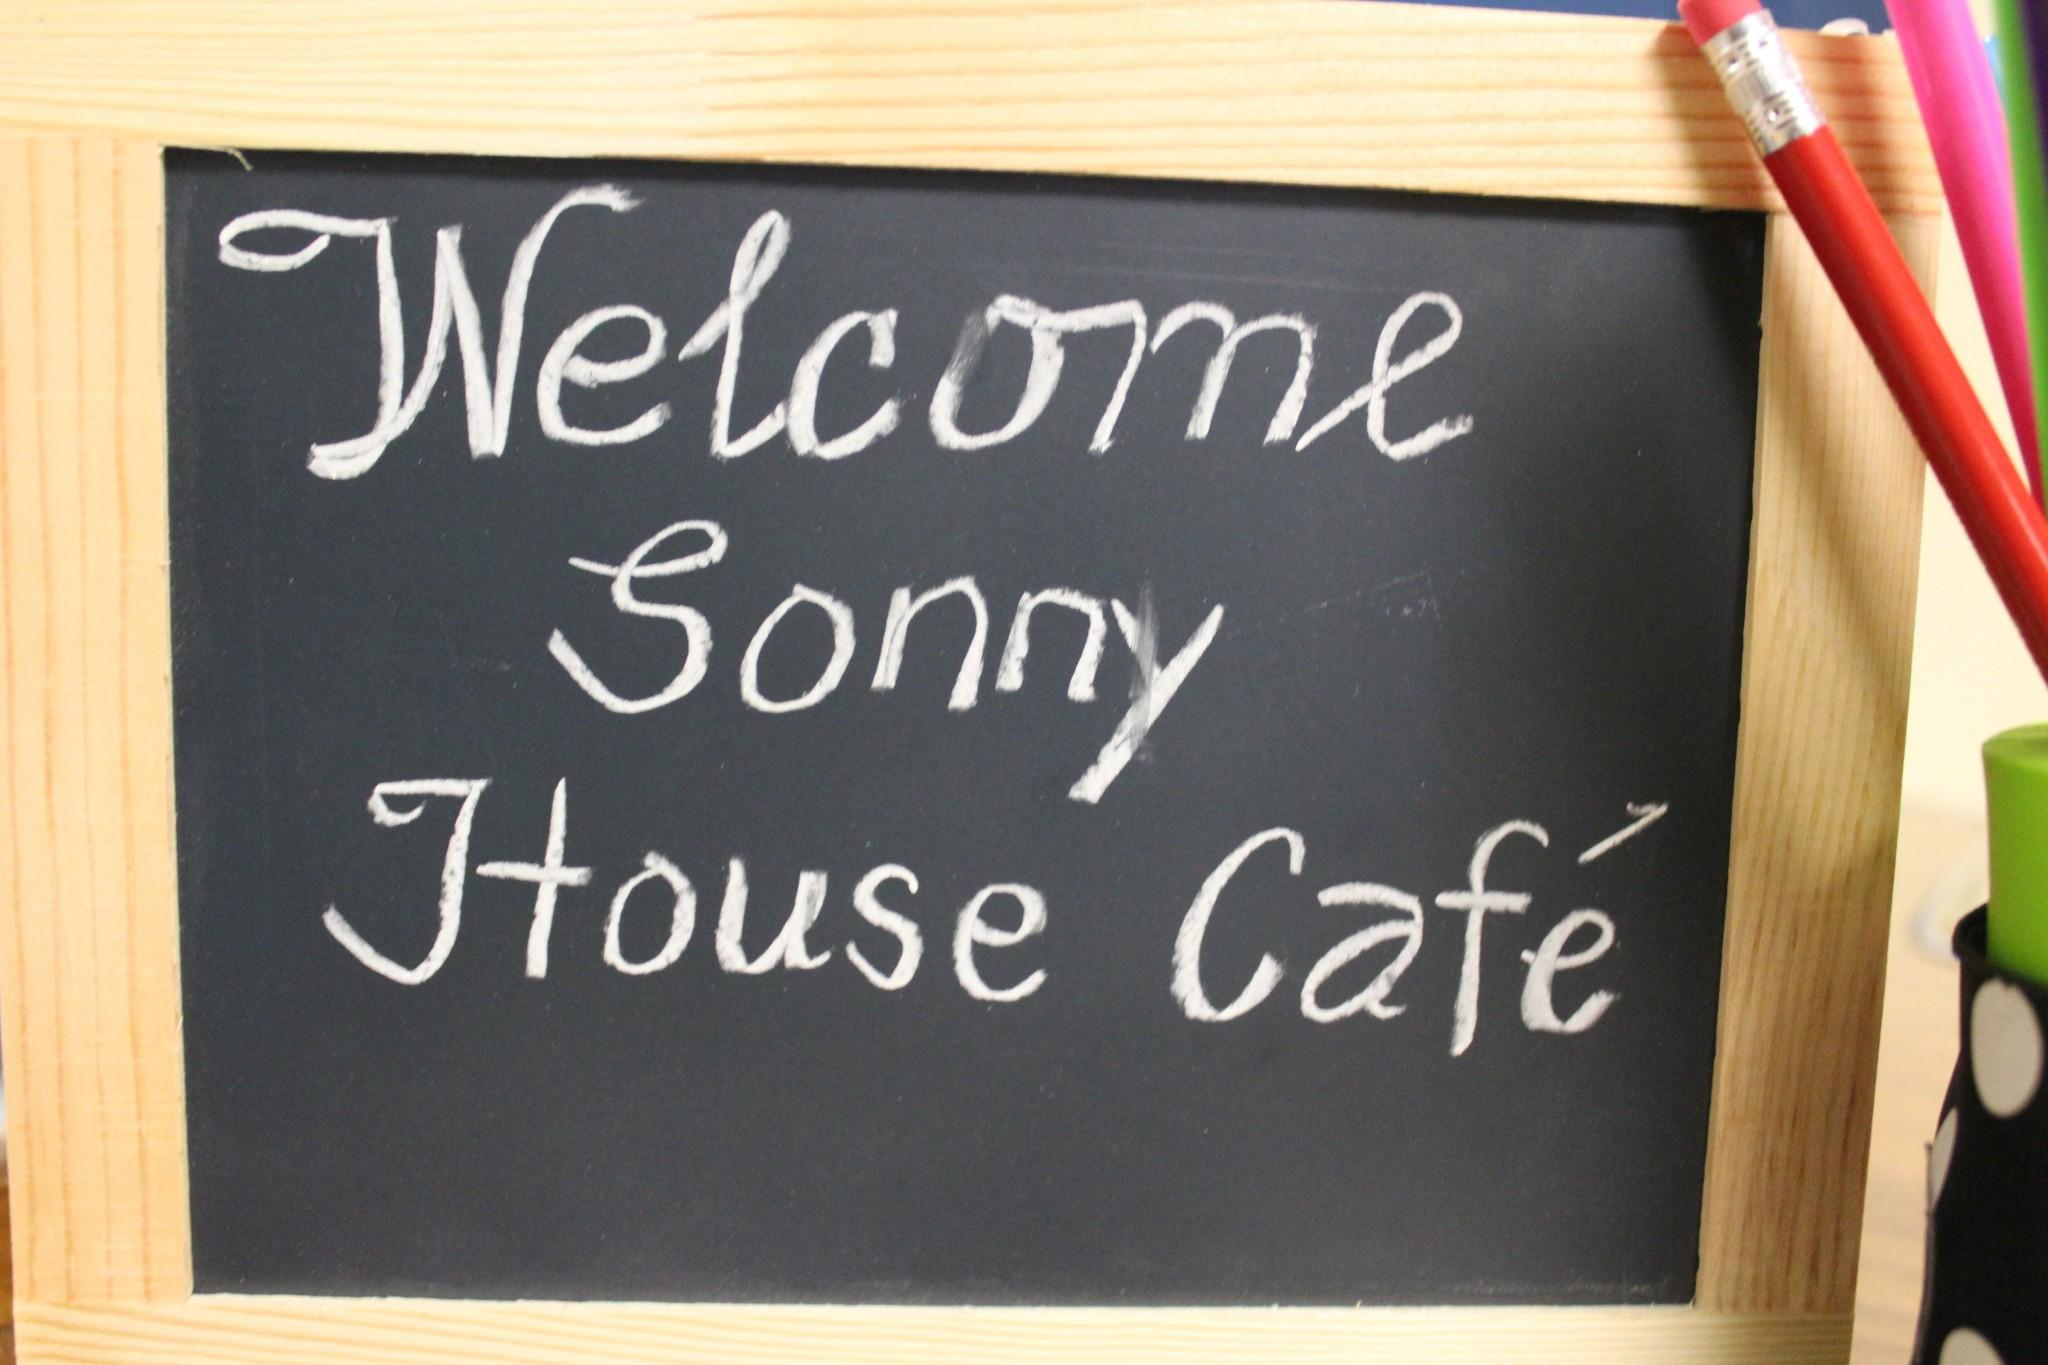 welcome to sonny house cafe sign